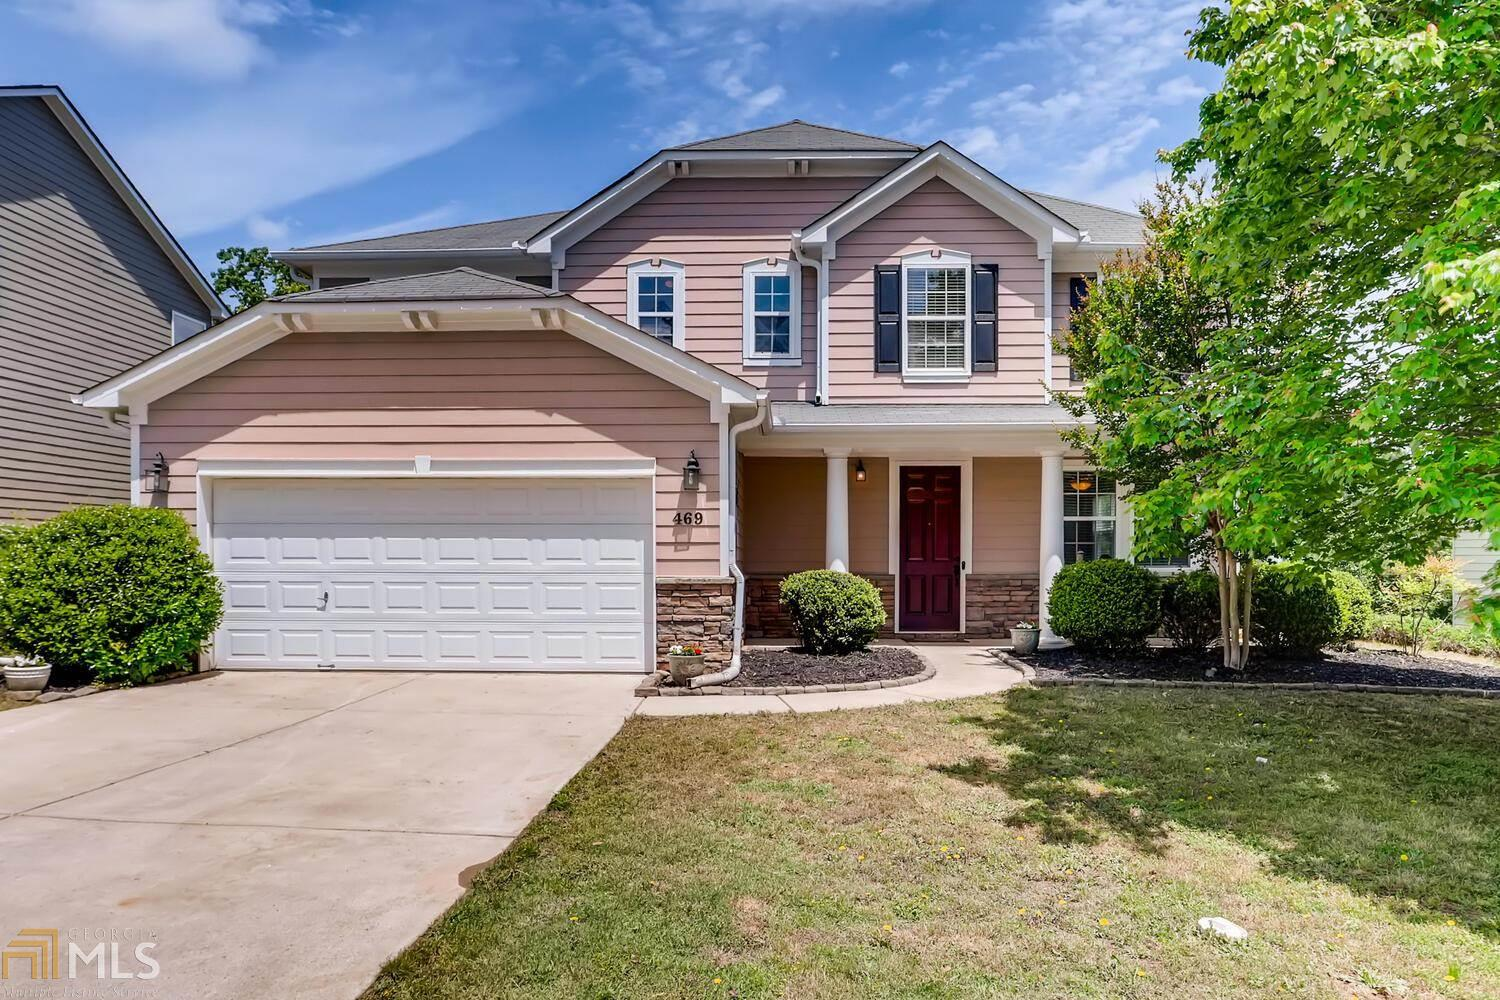 Image for property 469 Branch Valley Drive, Dallas, GA 30132-0834